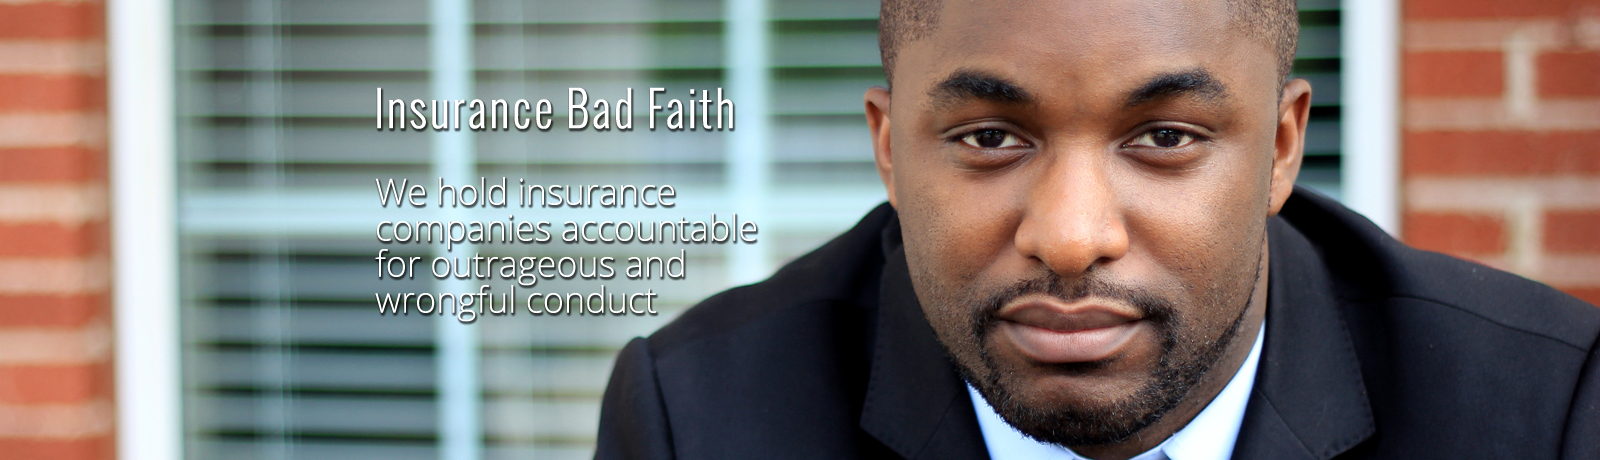 insurance bad faith